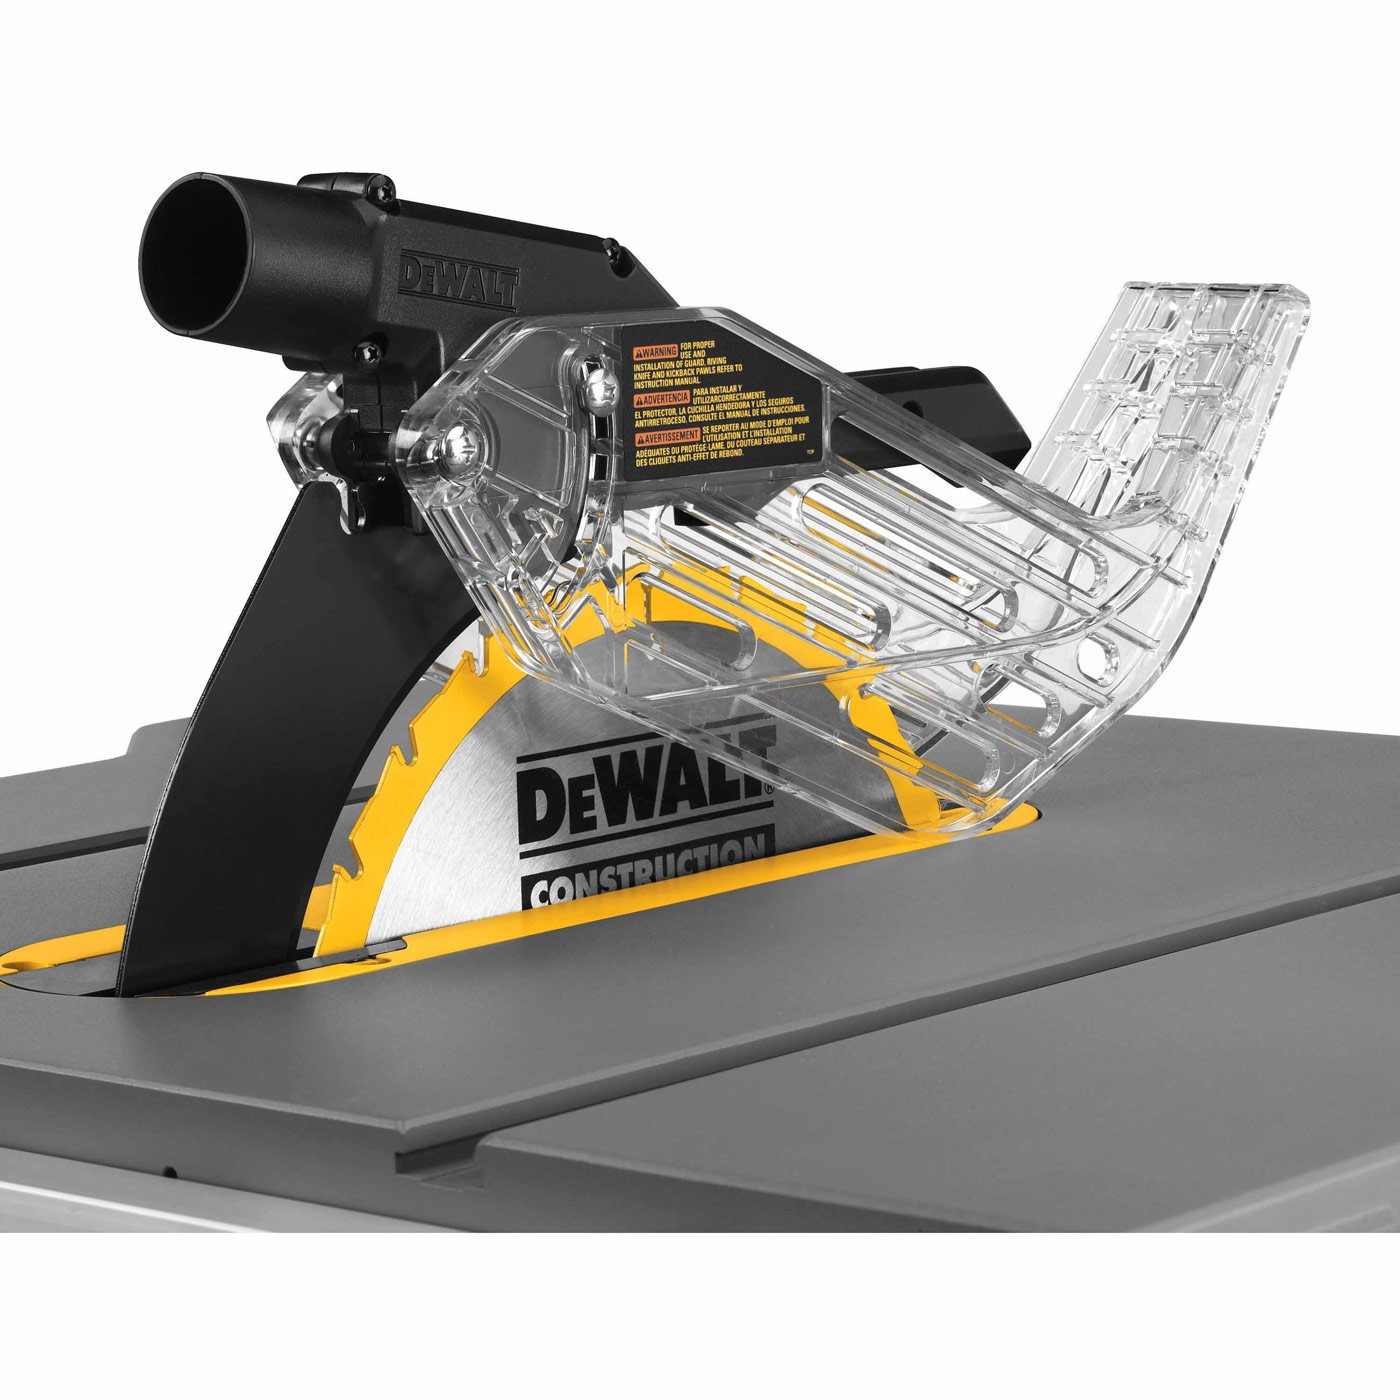 Dewalt dwe7499gd 10 jobsite table saw with guard detect 32 1 2 rip capacity and rolling stand Table saw guards